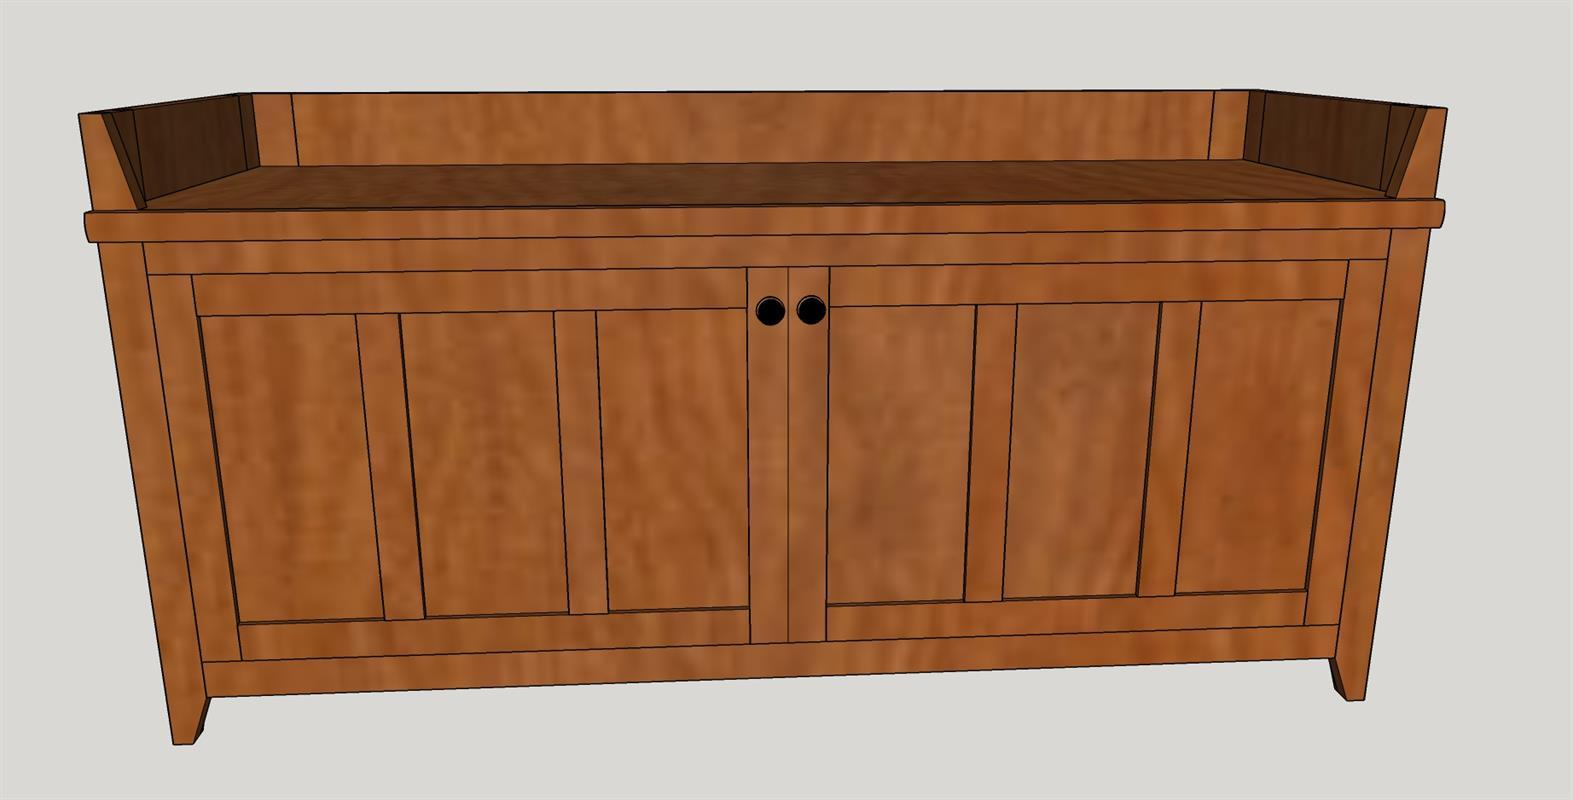 craftsman-style-storage-bench-colored-frony-view